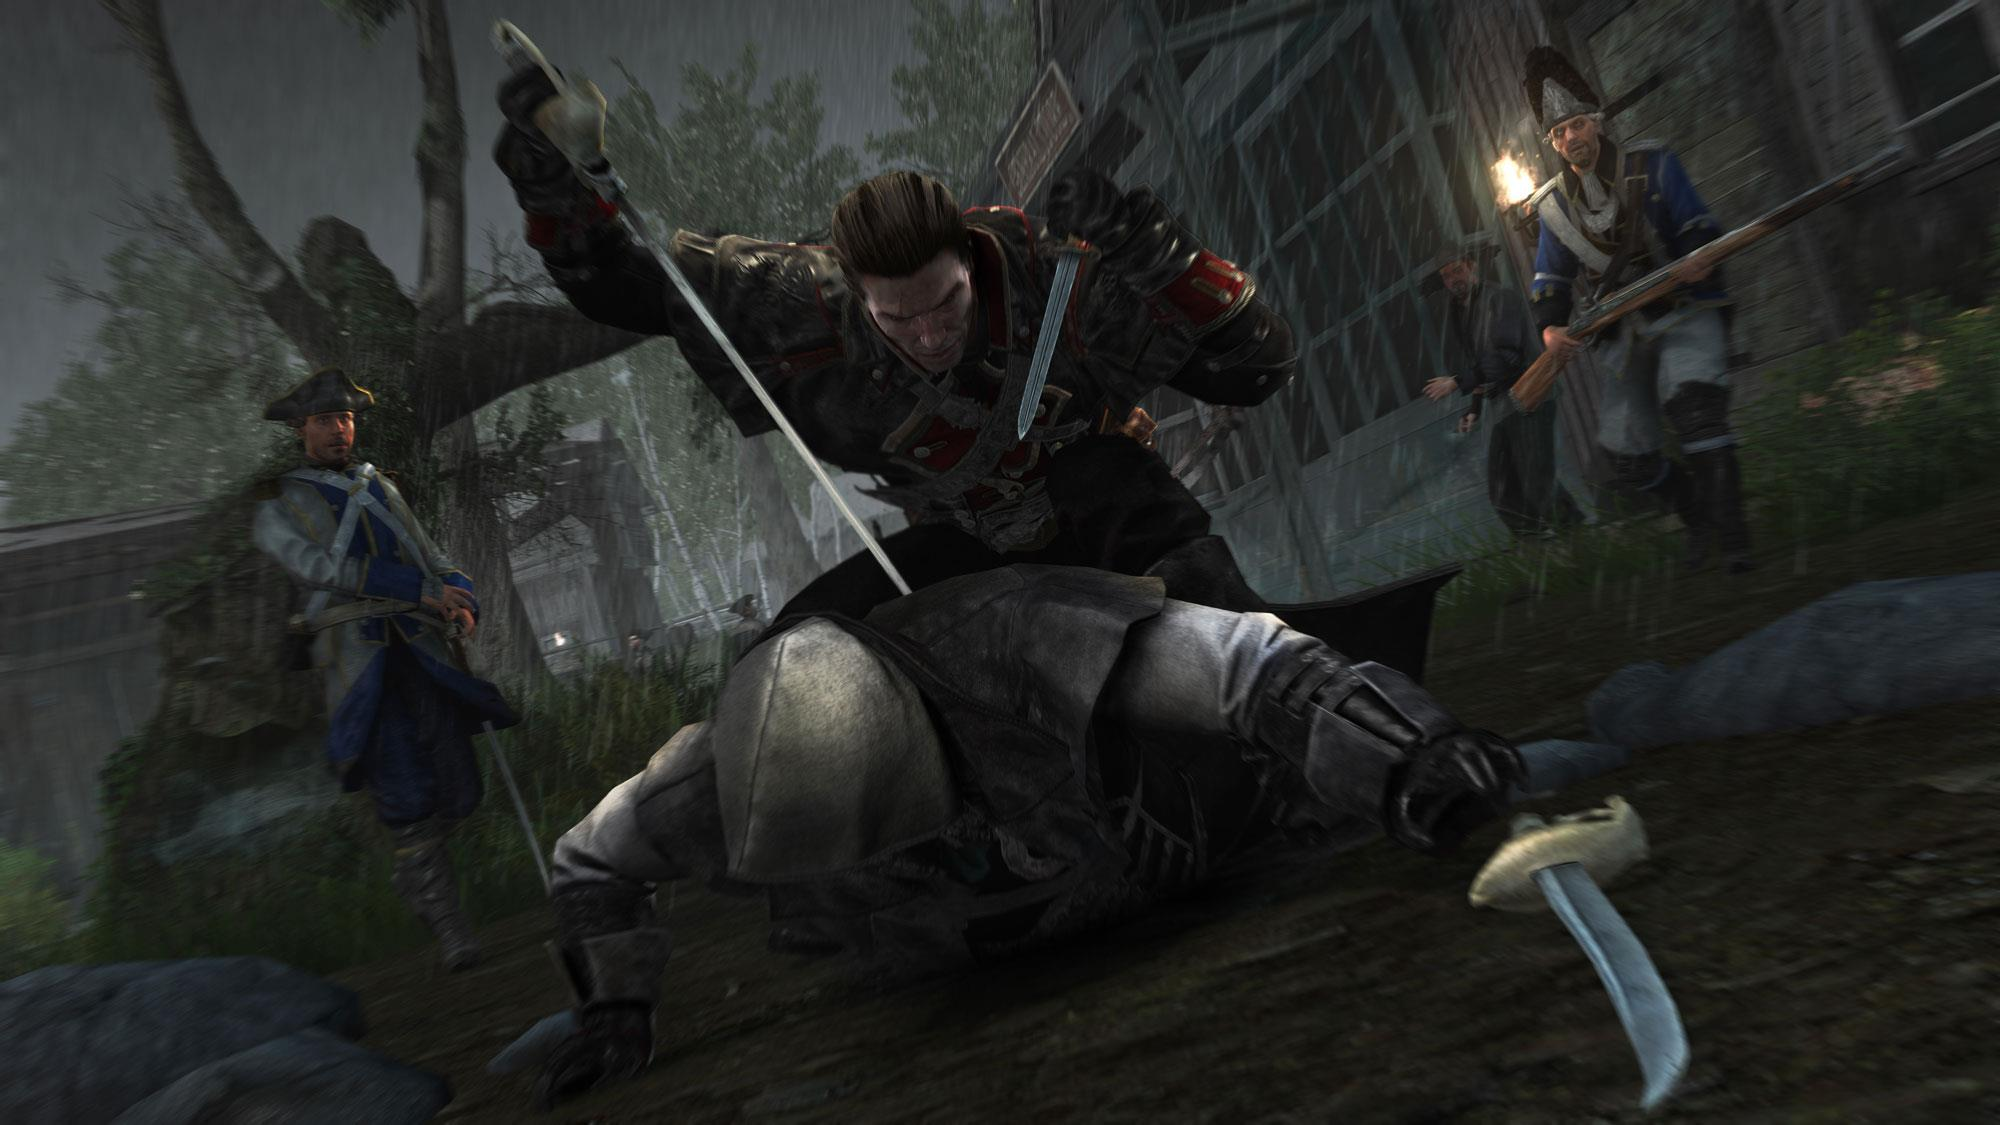 assassins-creed-rogue-shay-patrick-cormac-screenshot